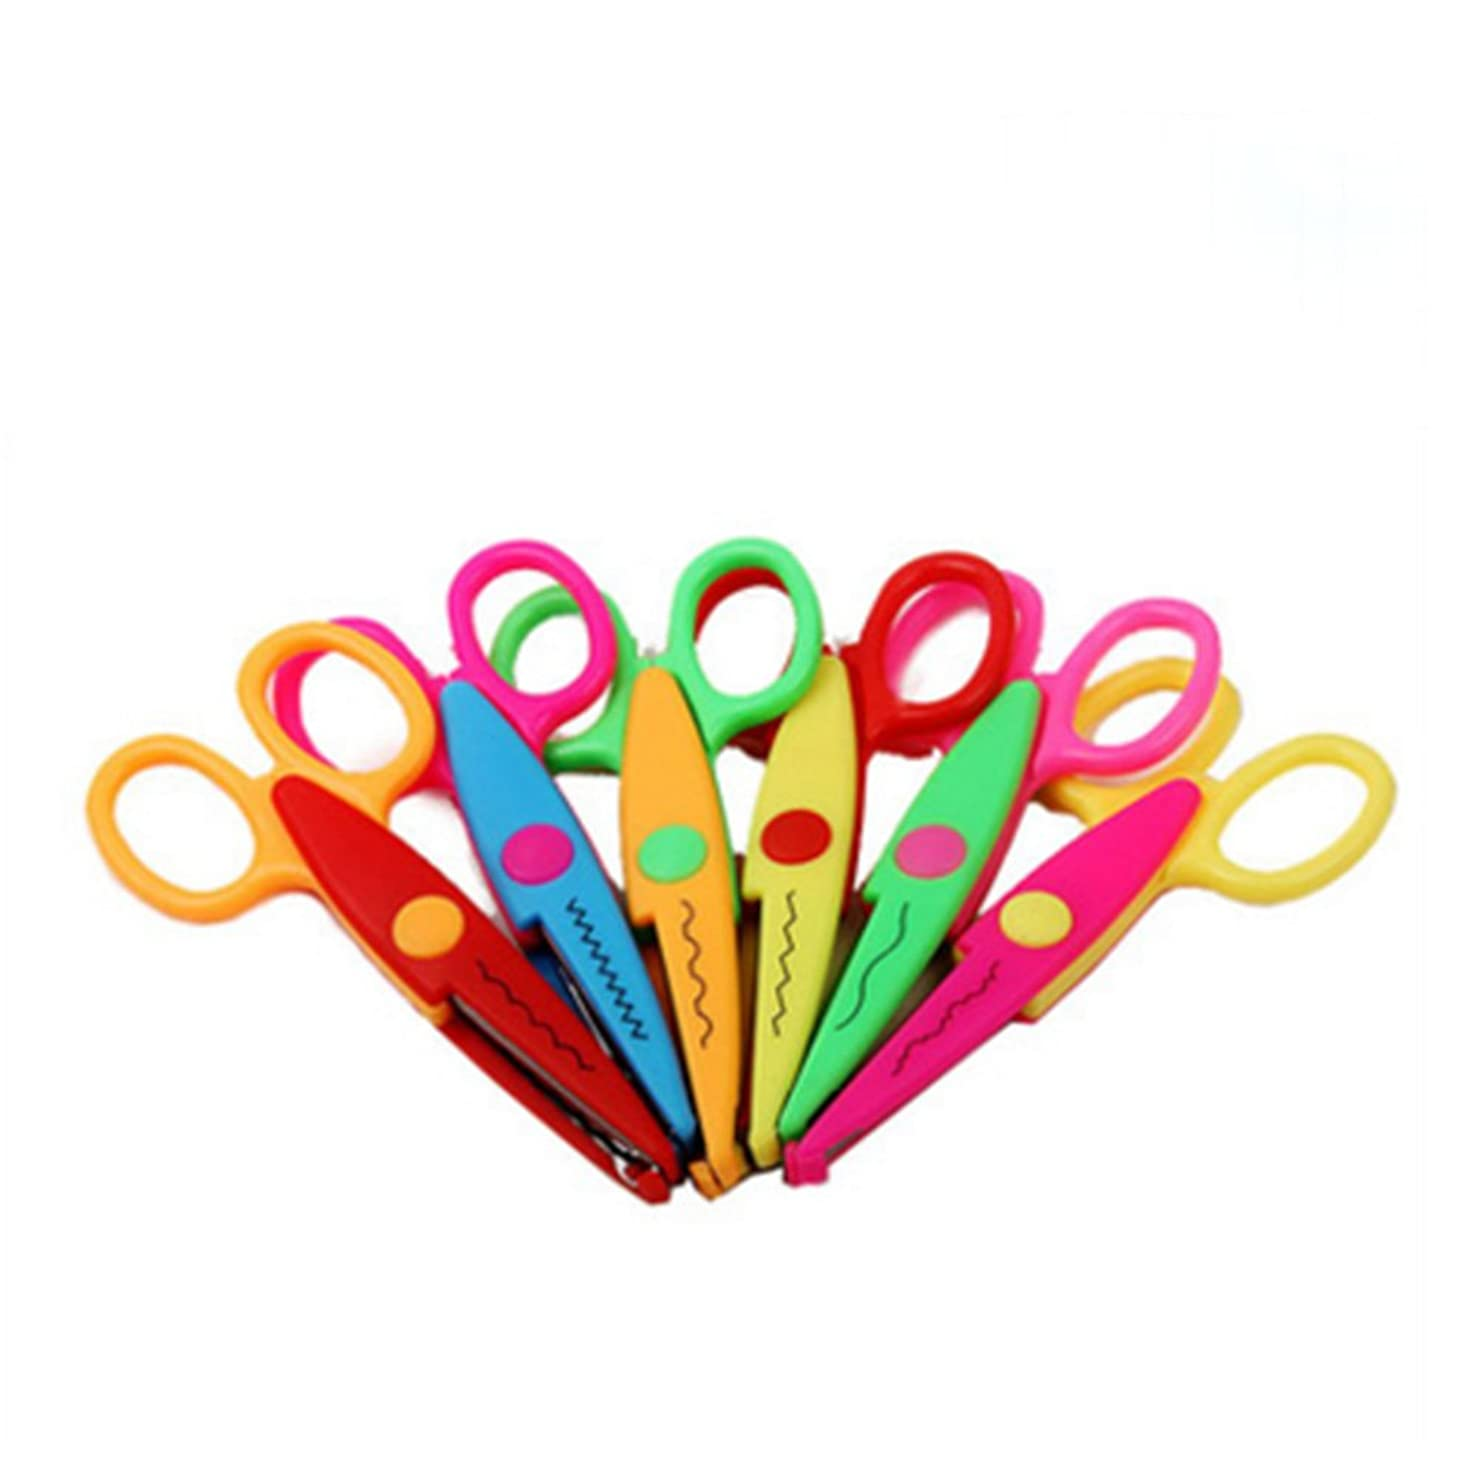 CiCy 5 Inch Length Creative Scissors School Smart Paper Decorative Wave Lace Edge Scissors - Set of 6 -Safe Paper Edging Scissors for scrapbook crafts and Gift Card (Pack of 6 )